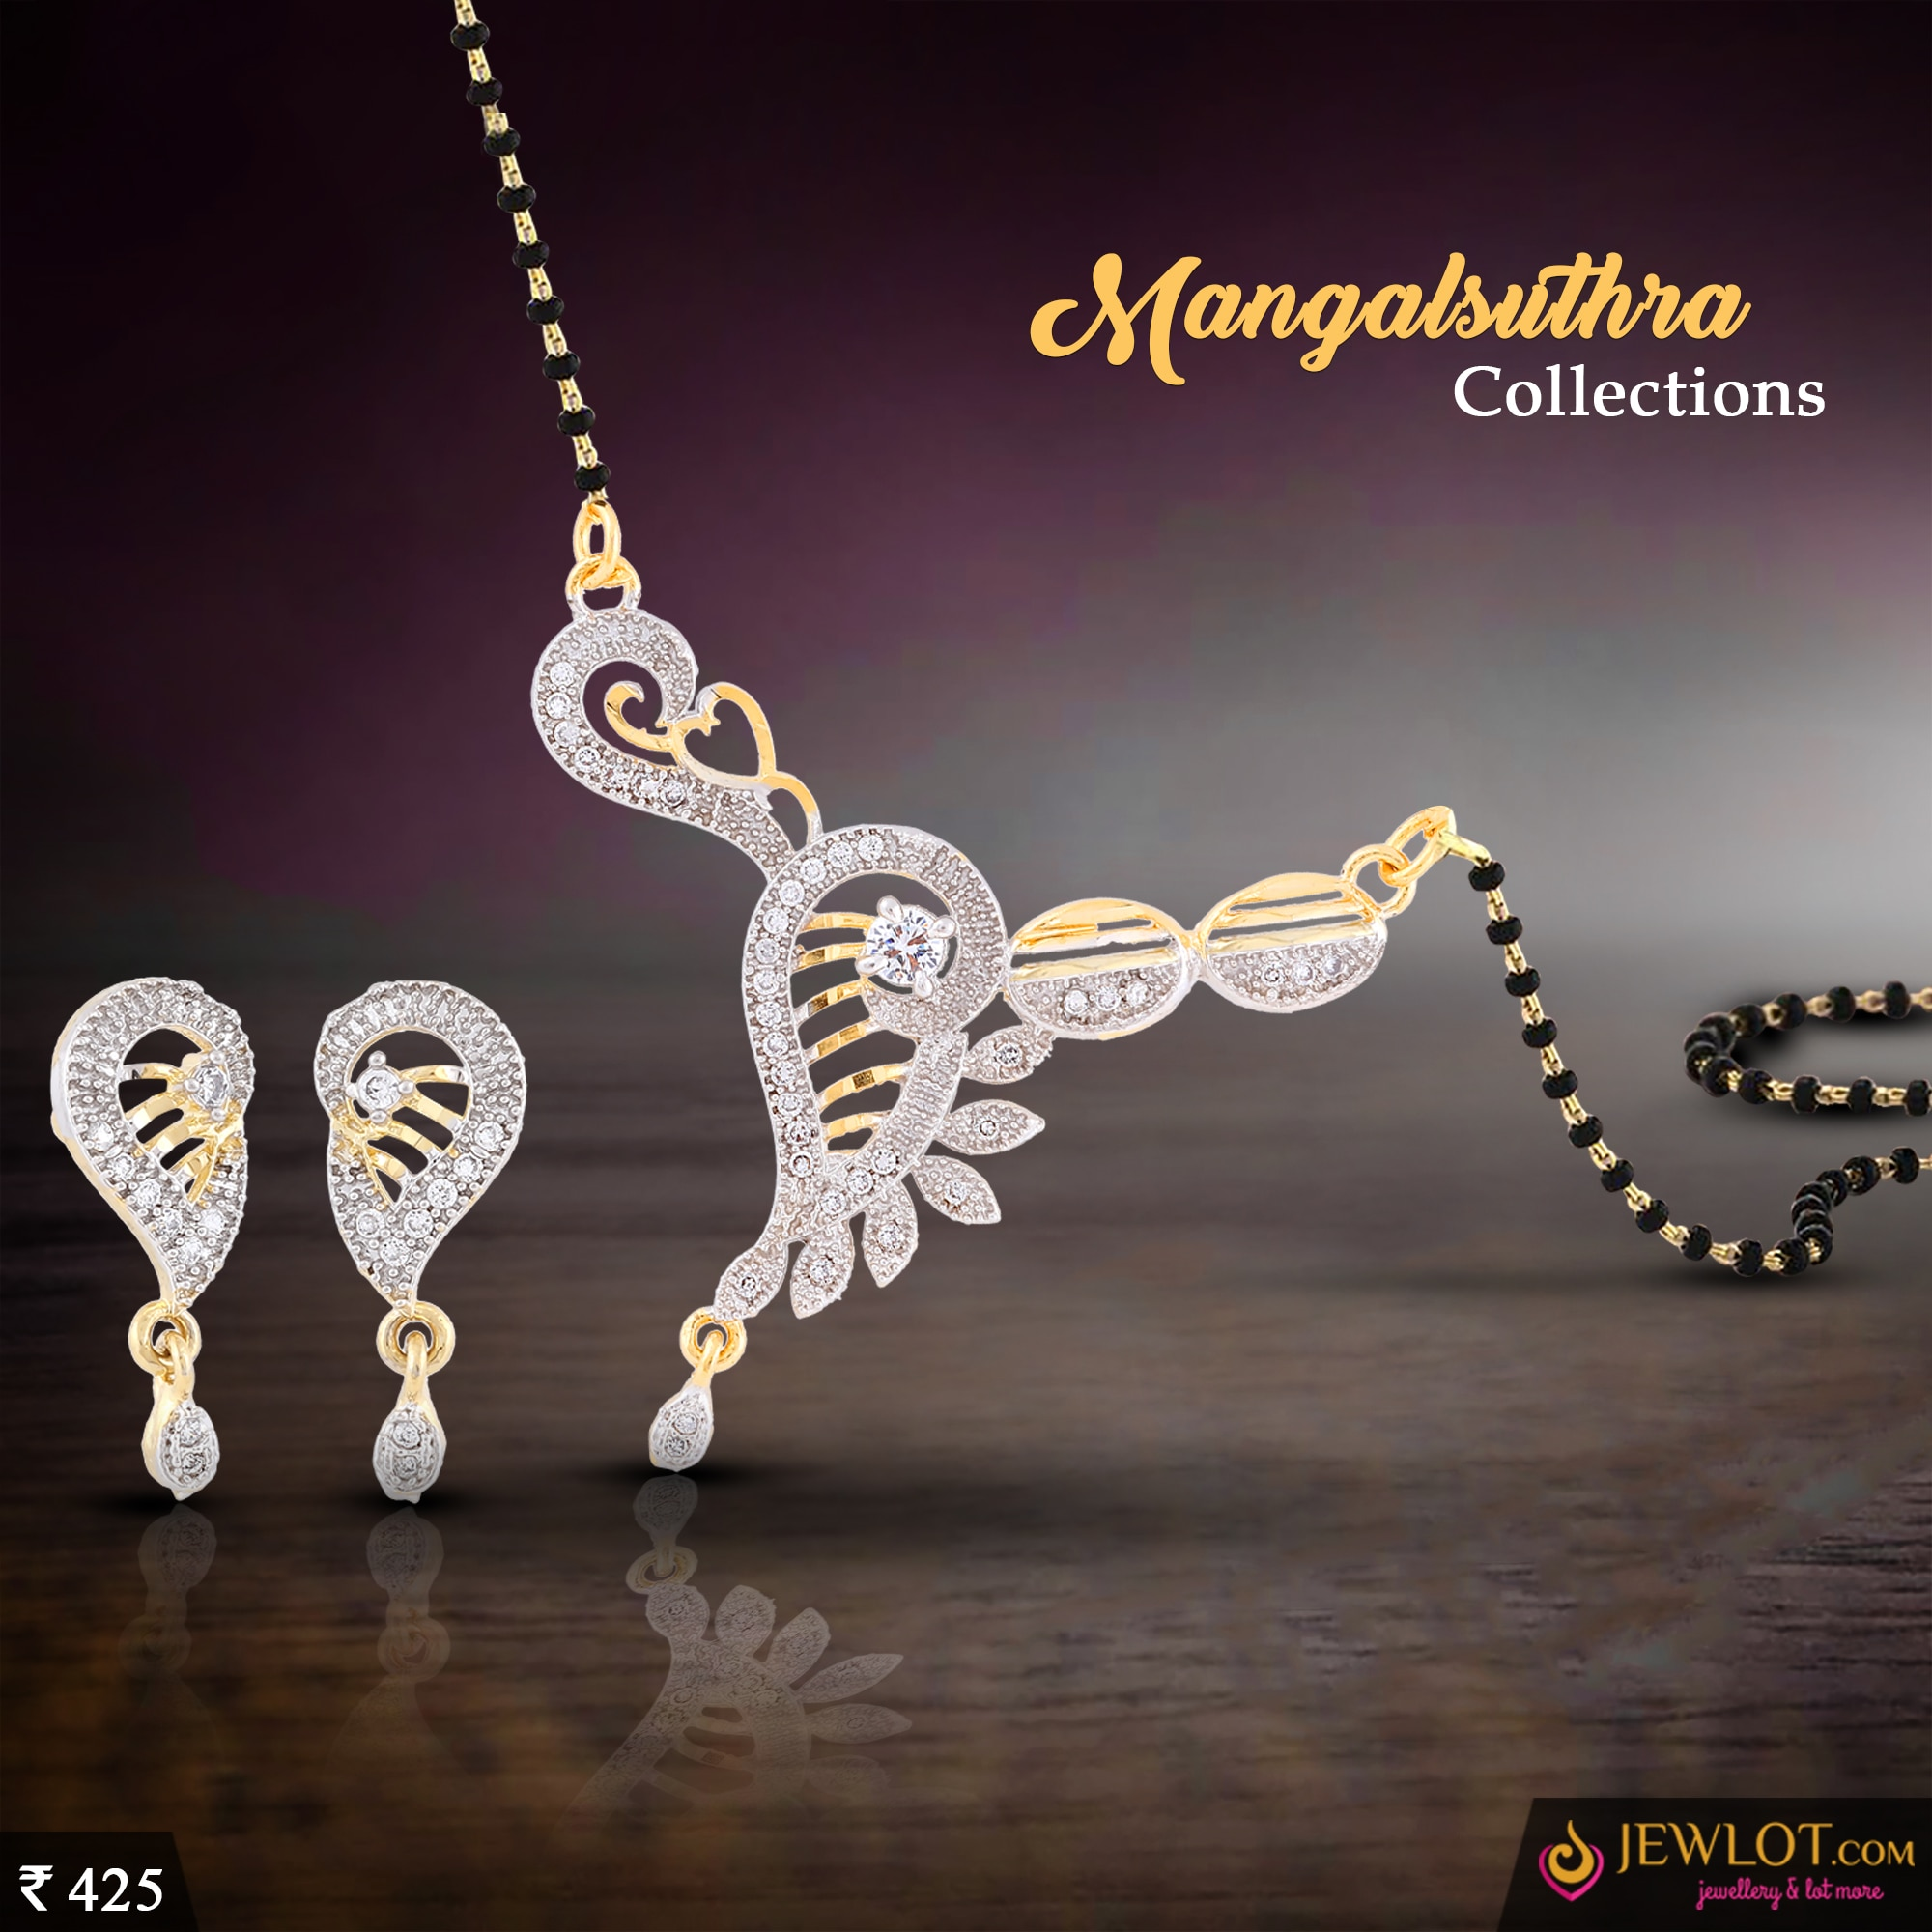 Together Forever!!  Exclusive American Diamond Mangalsuthra Collections!! #jewlot #mangalsuthra #easyreturns #wedding shop @http://bit.ly/2iTIUom see more @http://bit.ly/2jNDGJ7